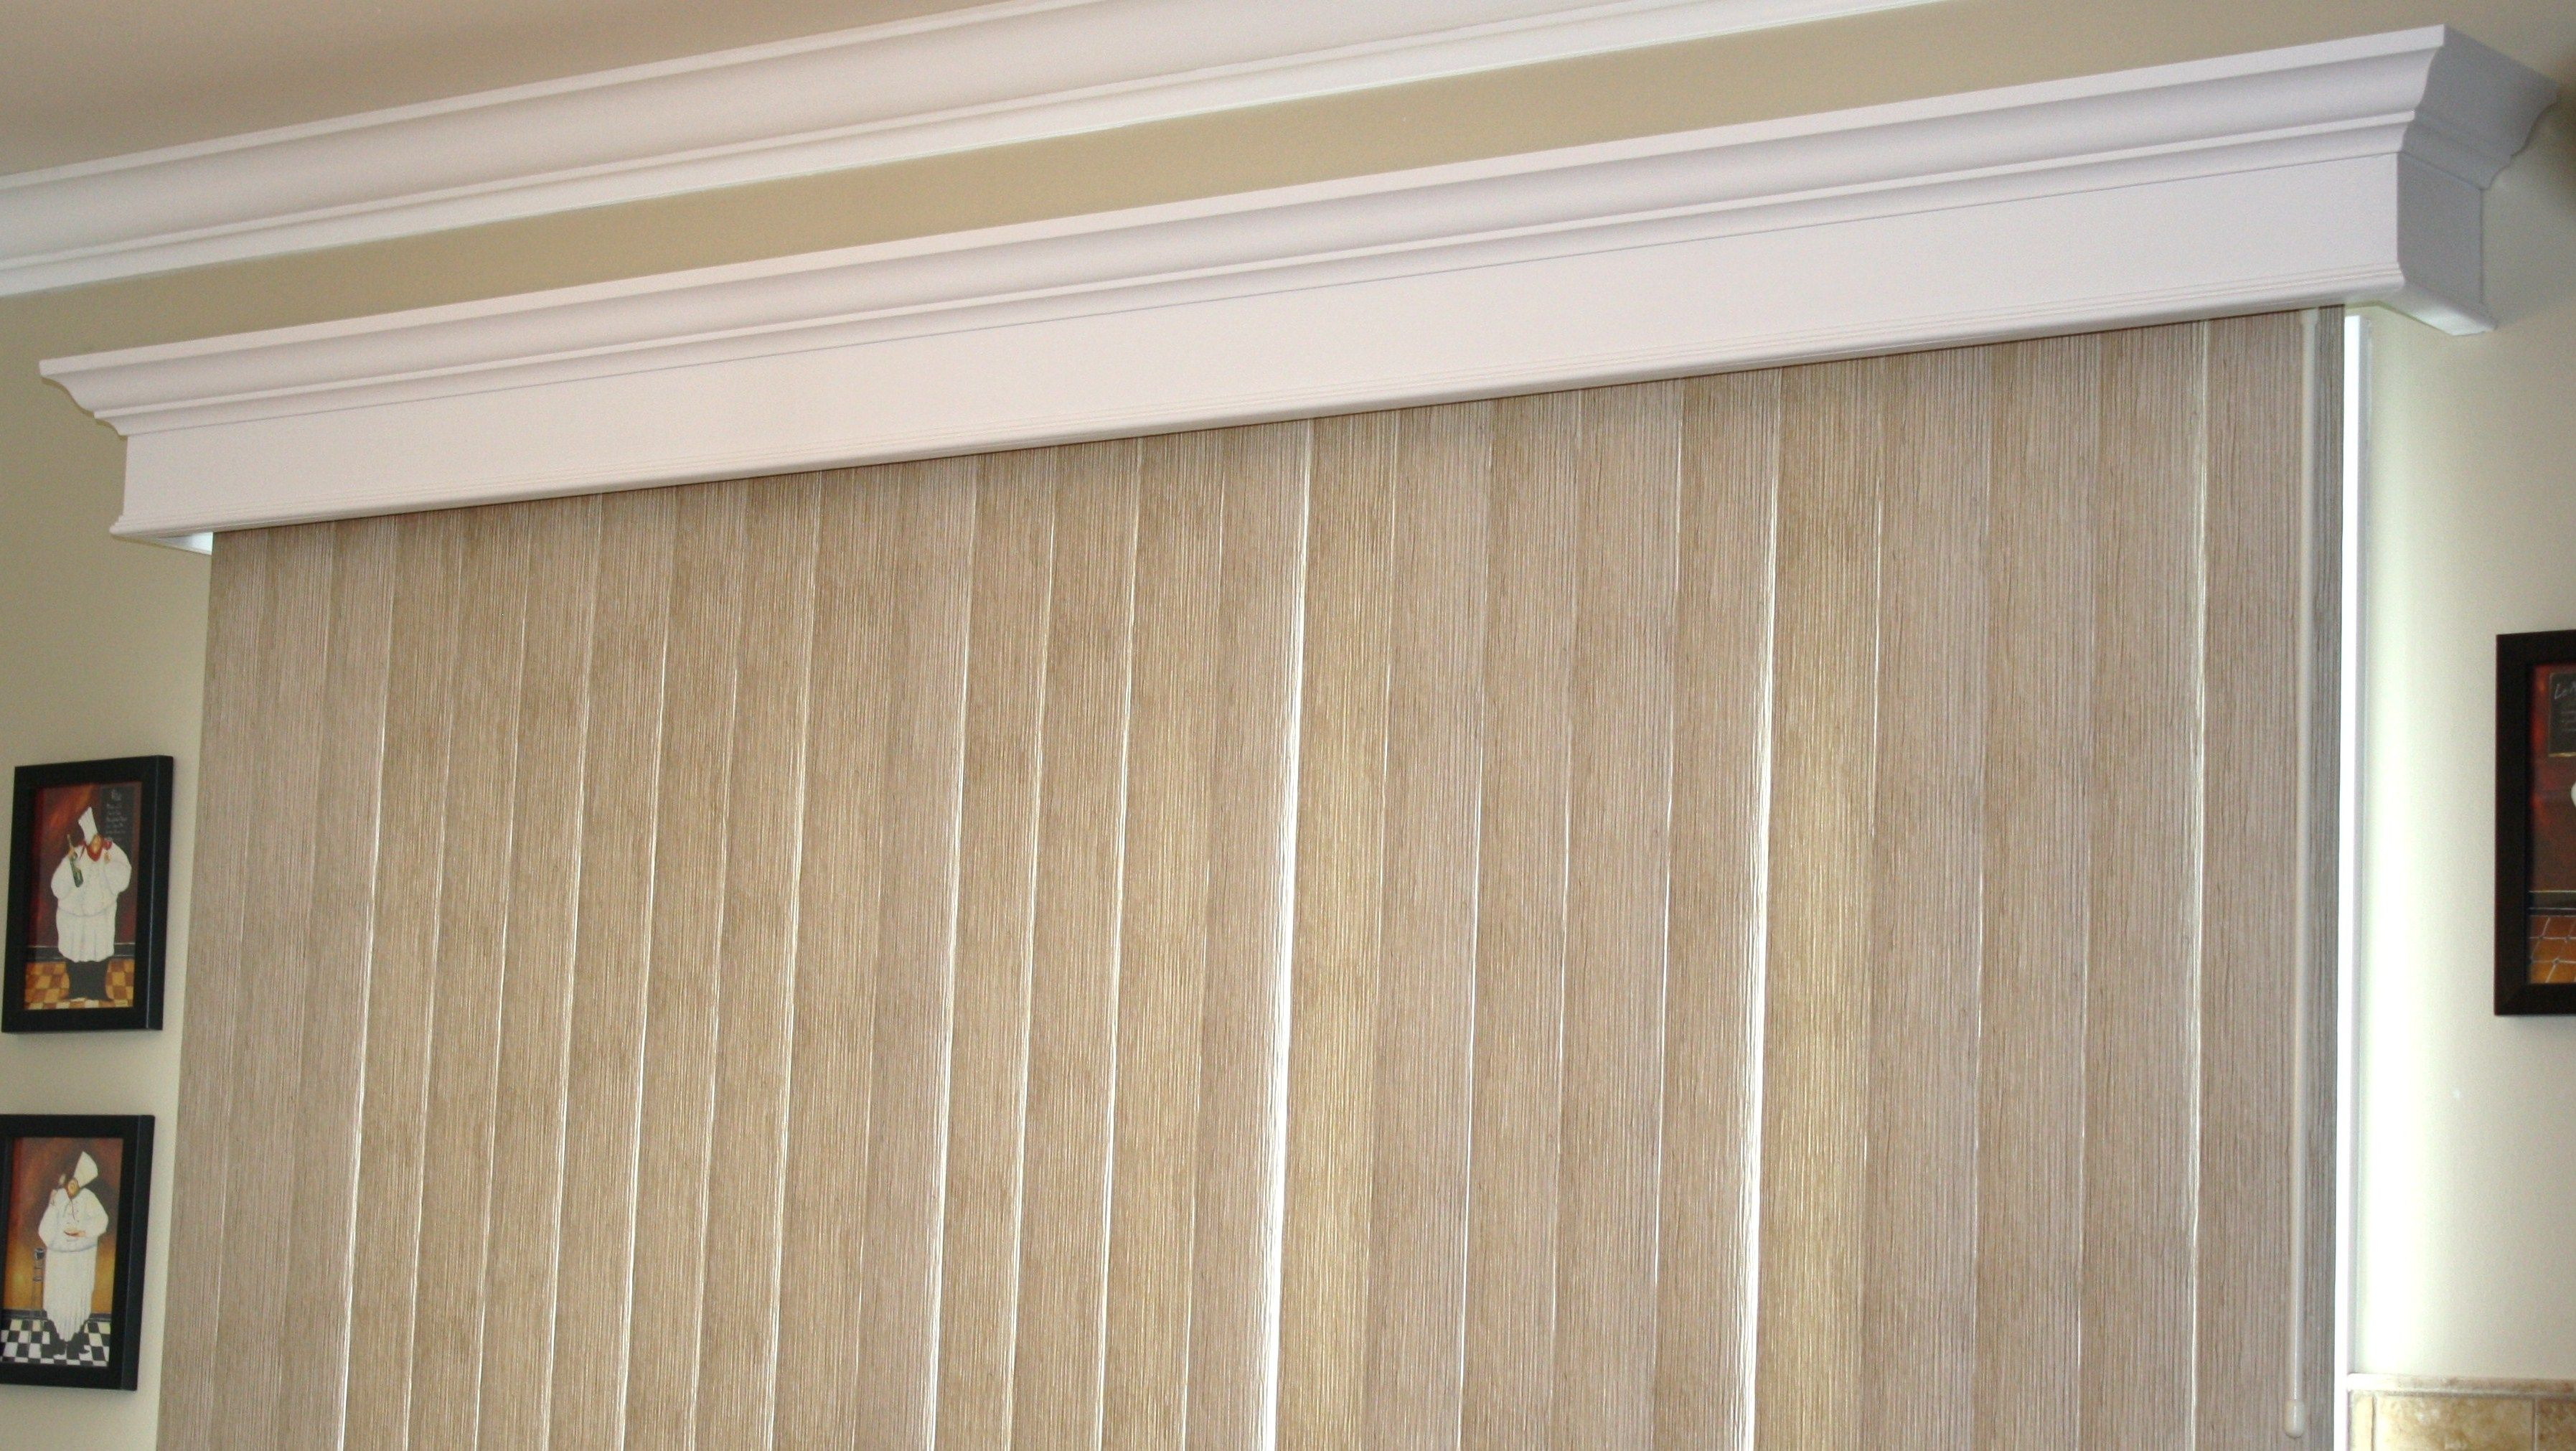 New Valance Ideas For Vertical Blinds